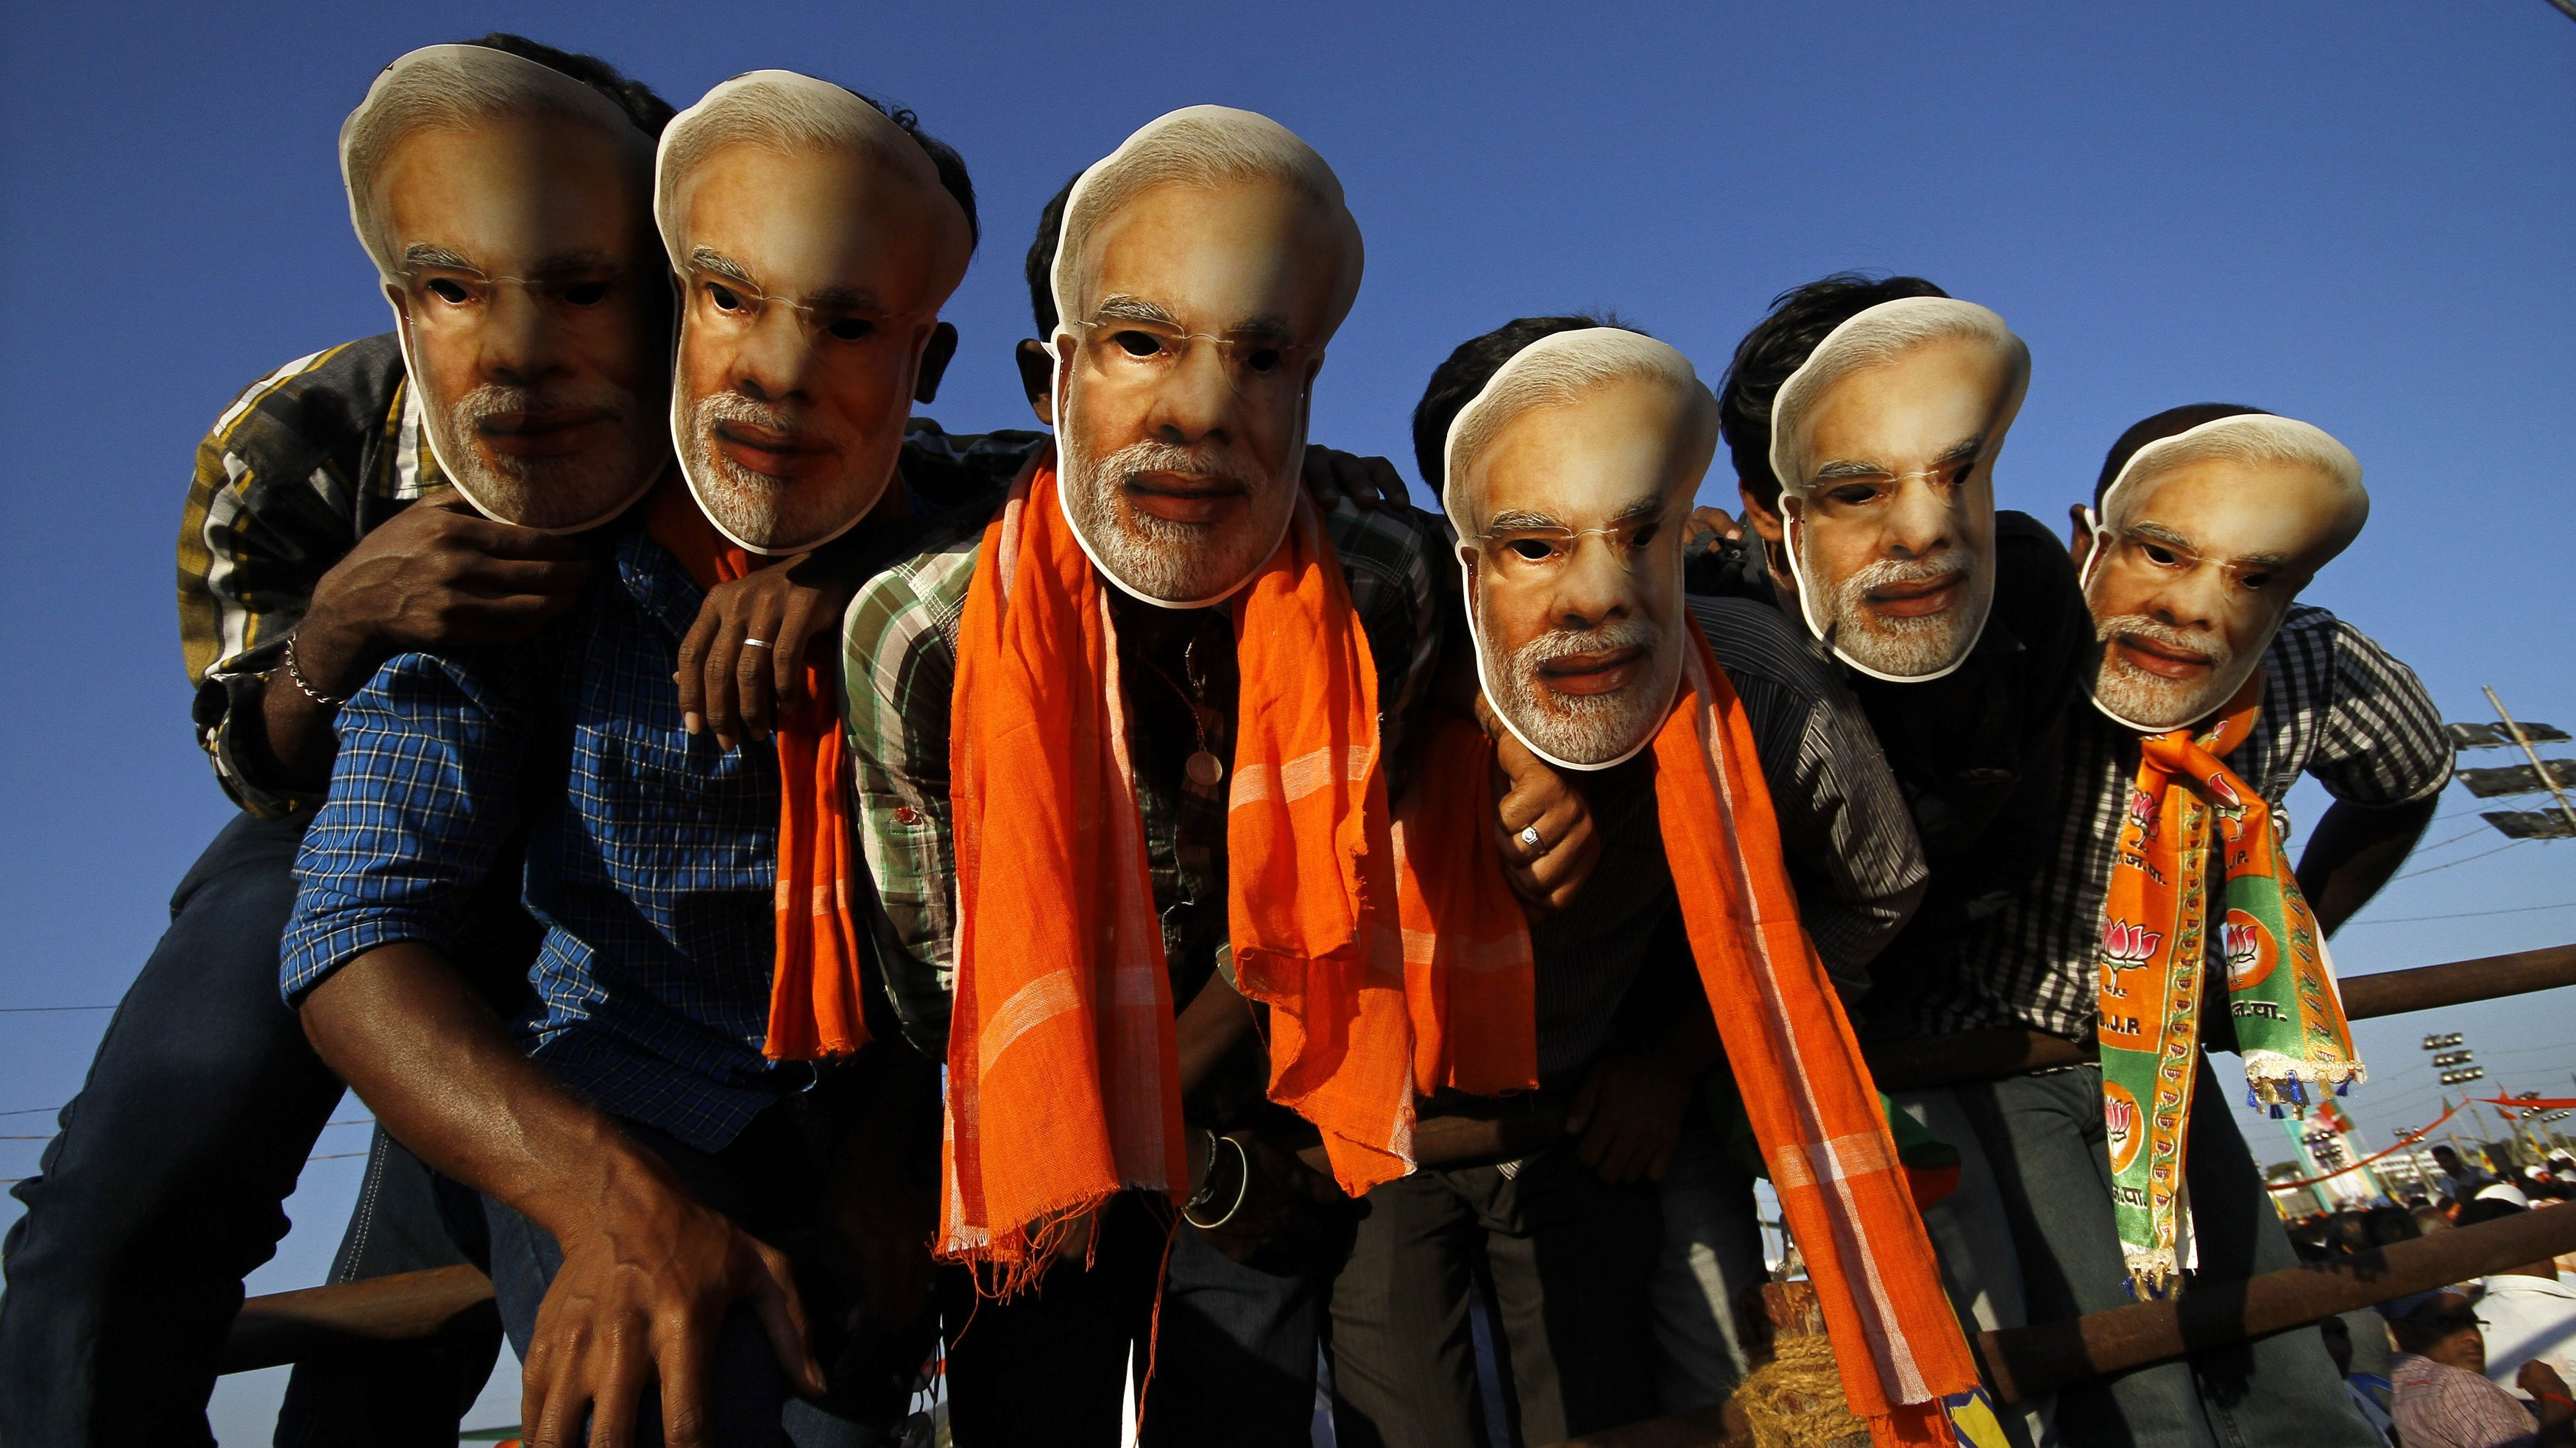 Supporters of Gujarat's chief minister and Hindu nationalist Narendra Modi, the prime ministerial candidate for India's main opposition Bharatiya Janata Party (BJP), wear masks of Modi during a rally being addressed by Modi ahead of the 2014 general elections, in the southern Indian city of Chennai February 8, 2014. REUTERS/Babu (INDIA - Tags: POLITICS) - GM1EA29050Y01